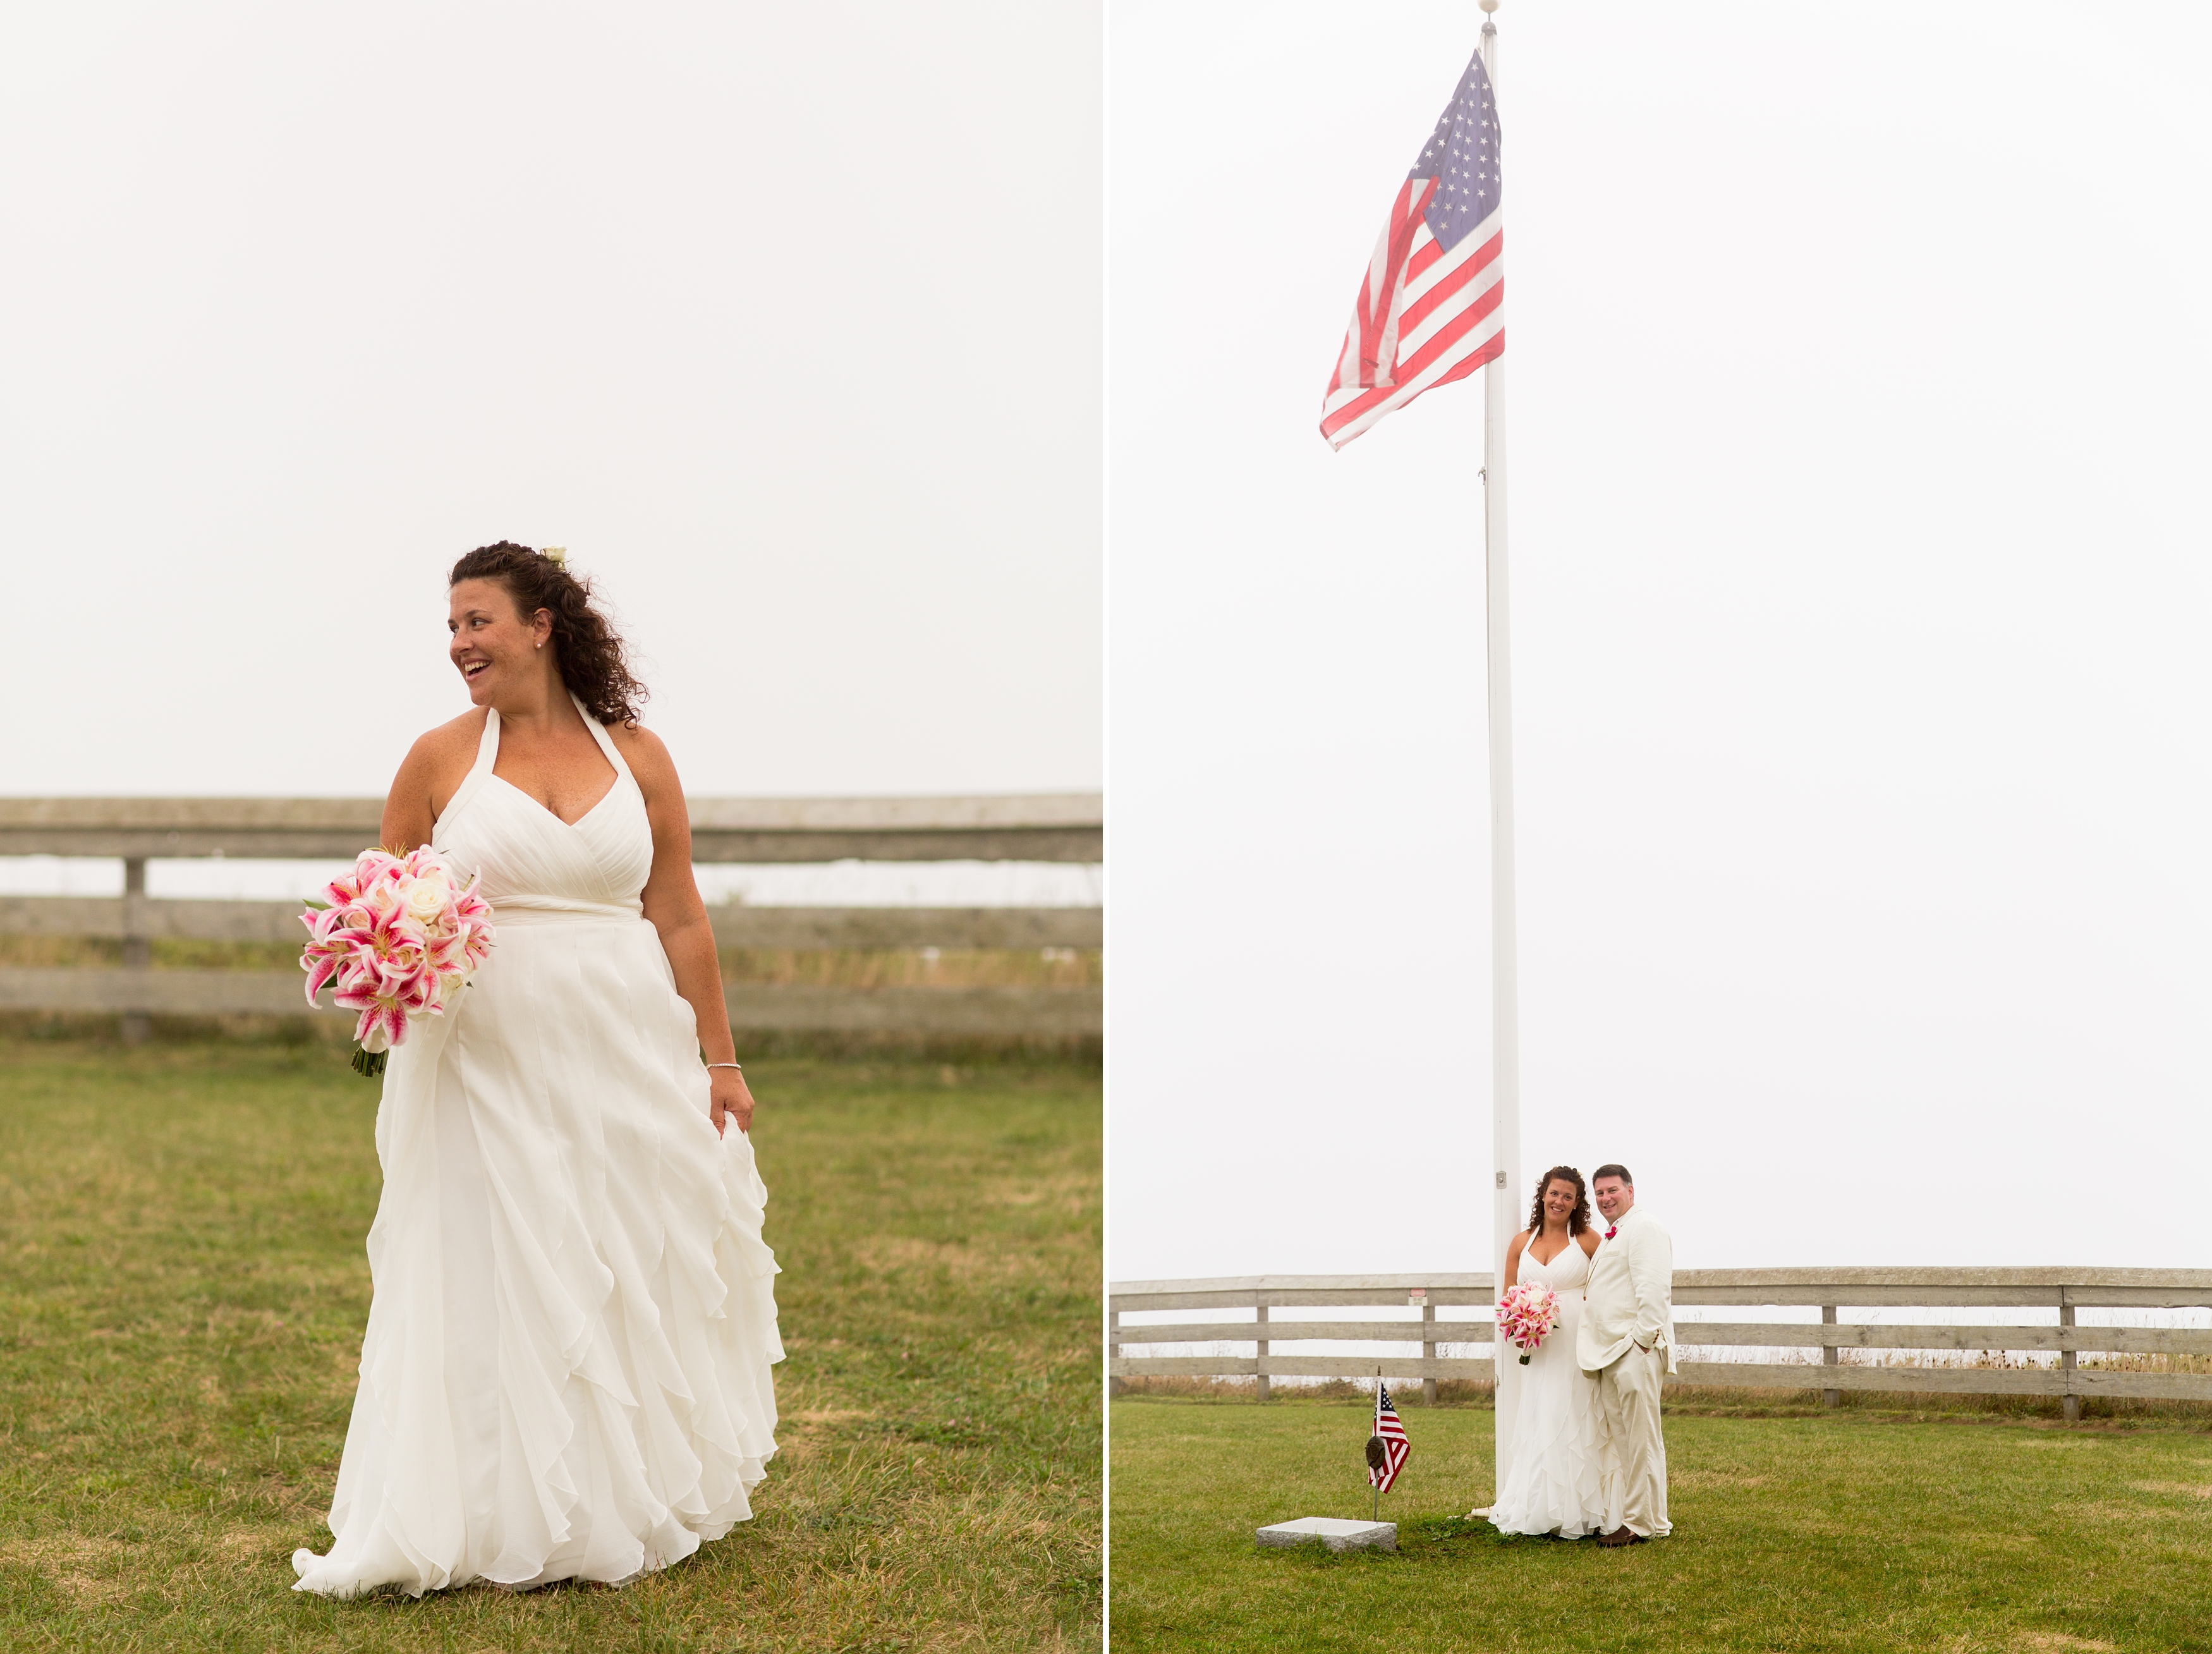 allegra_anderson_photography_block_island_rhode_island_wedding_photographer_spring_house_odell_2016264